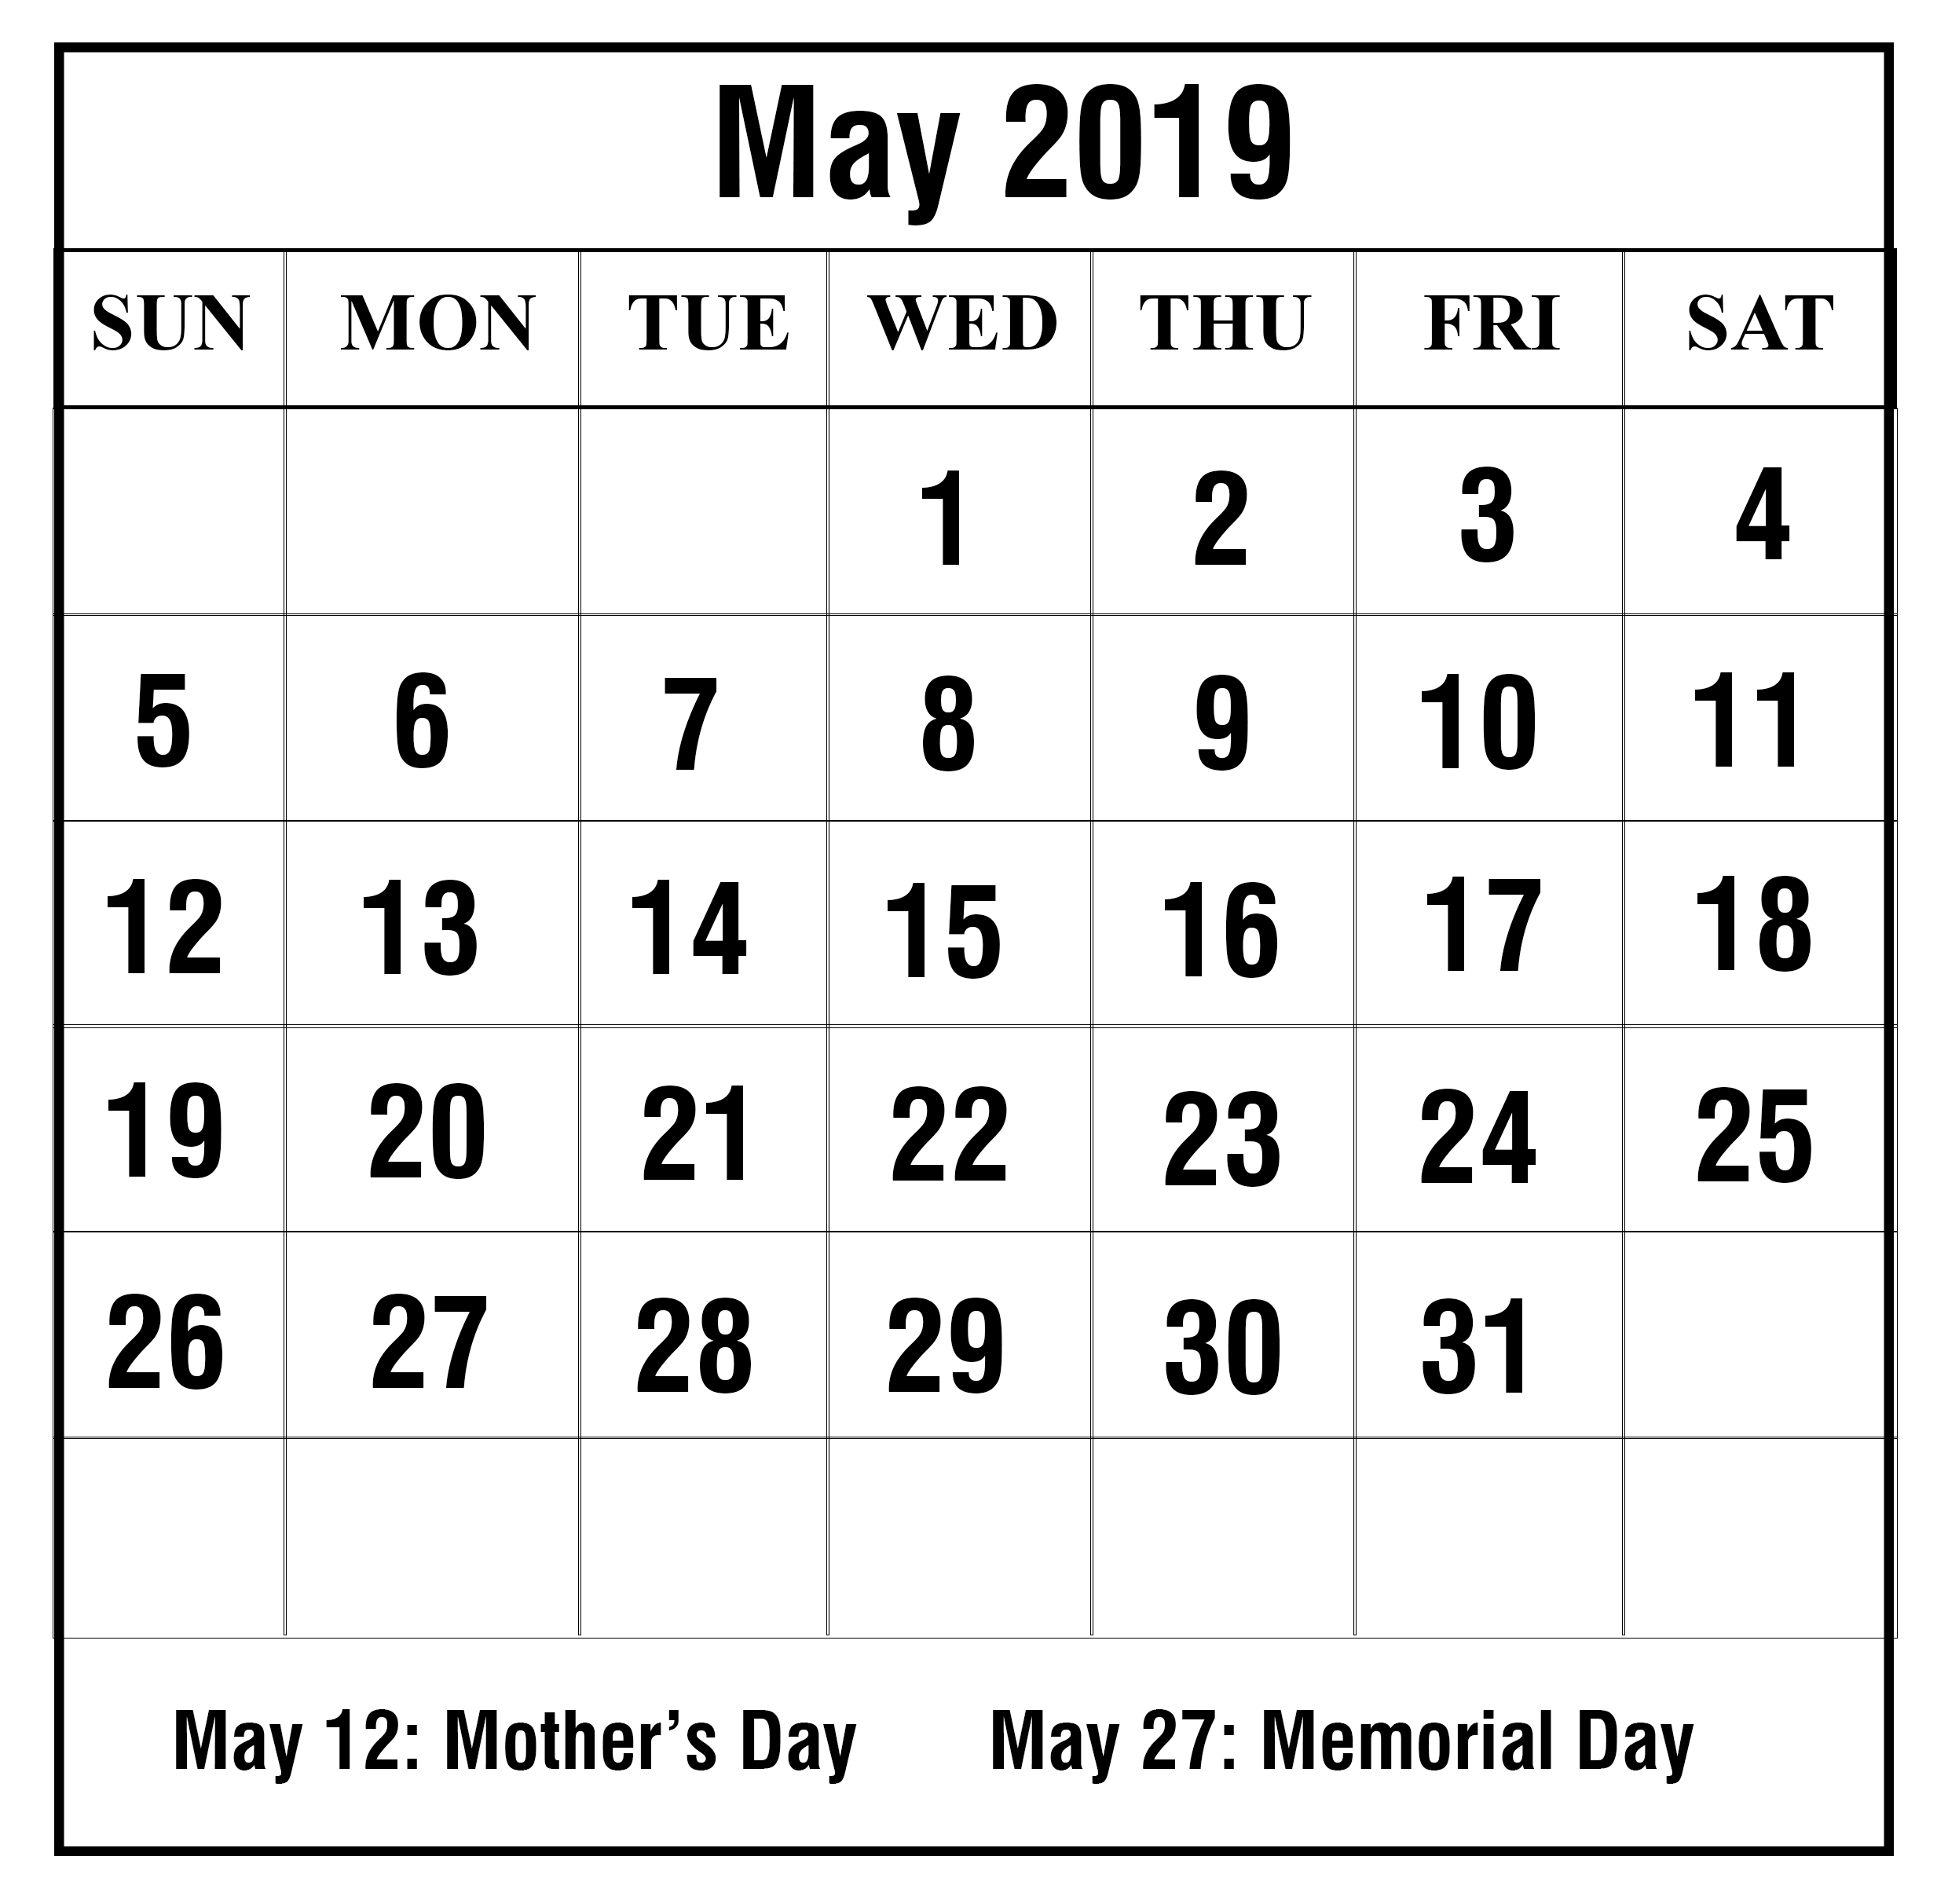 Free May 2019 Printable Calendar In Pdf, Word, Excel | Printable May May 8 2019 Calendar